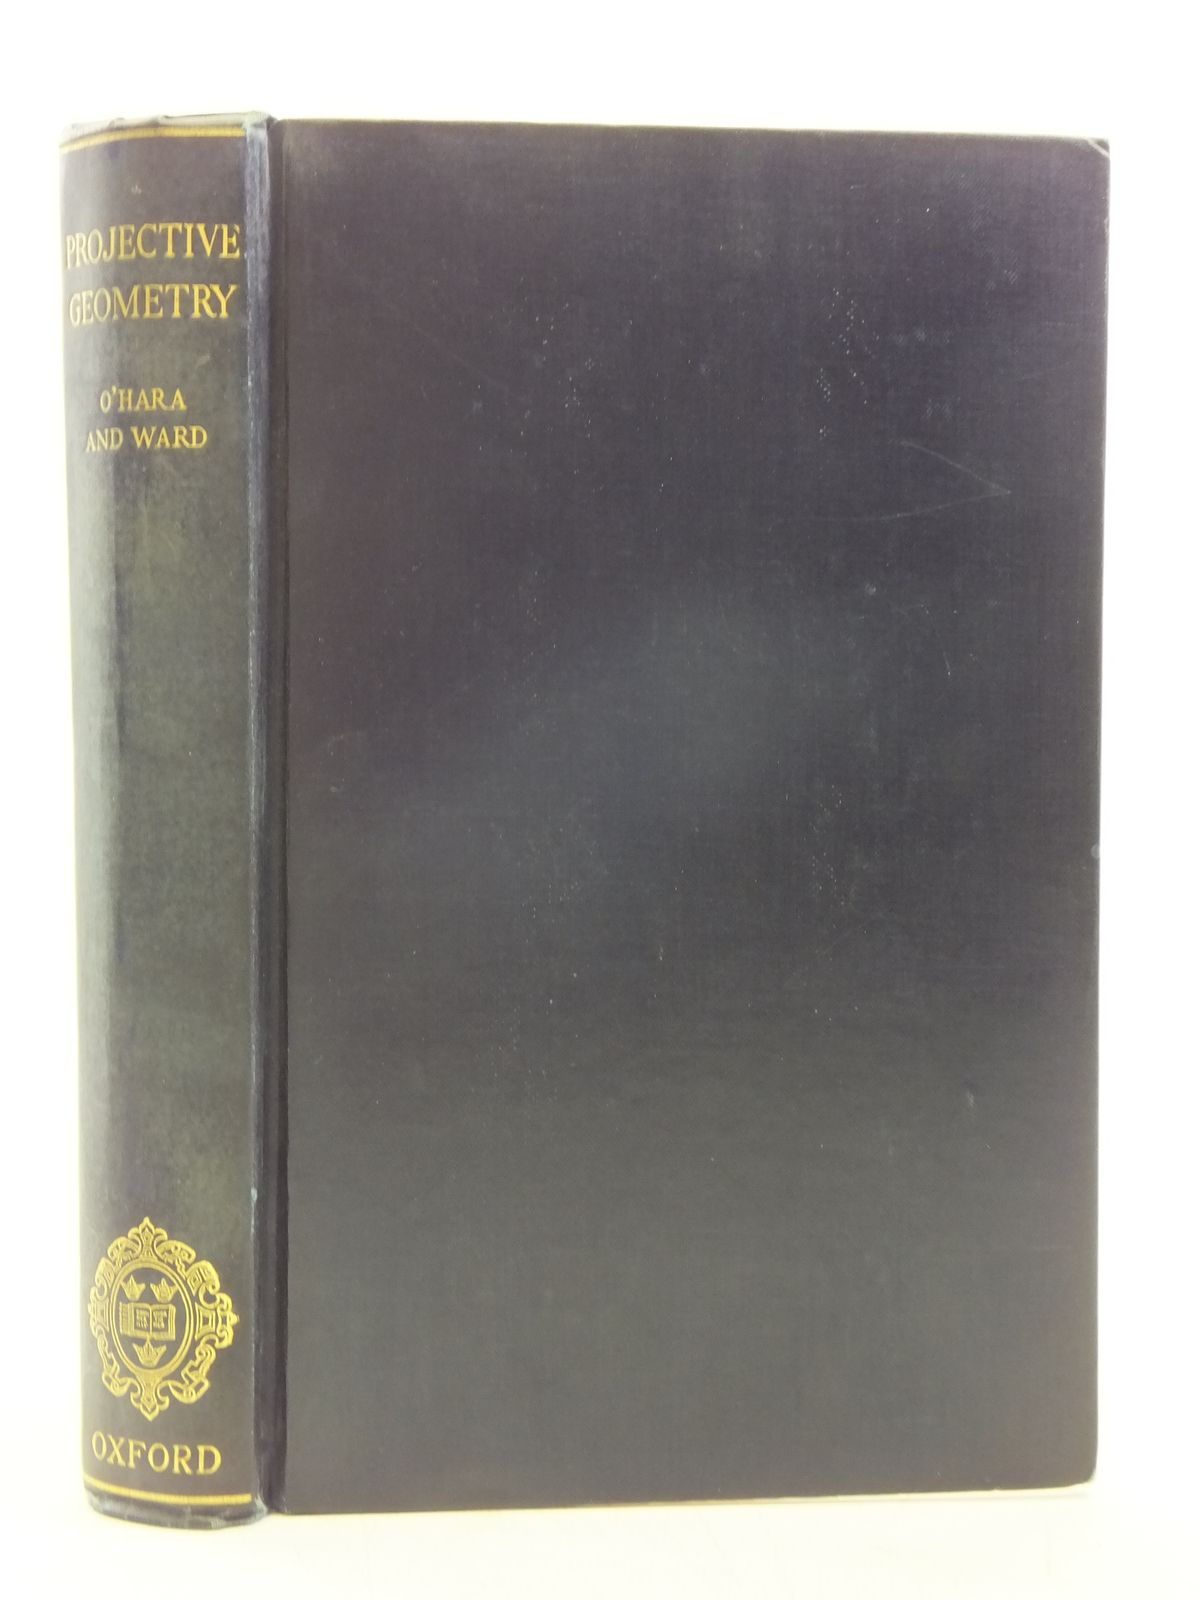 Photo of AN INTRODUCTION TO PROJECTIVE GEOMETRY written by O'Hara, C.W. Ward, D.R. published by Oxford at the Clarendon Press (STOCK CODE: 2119586)  for sale by Stella & Rose's Books